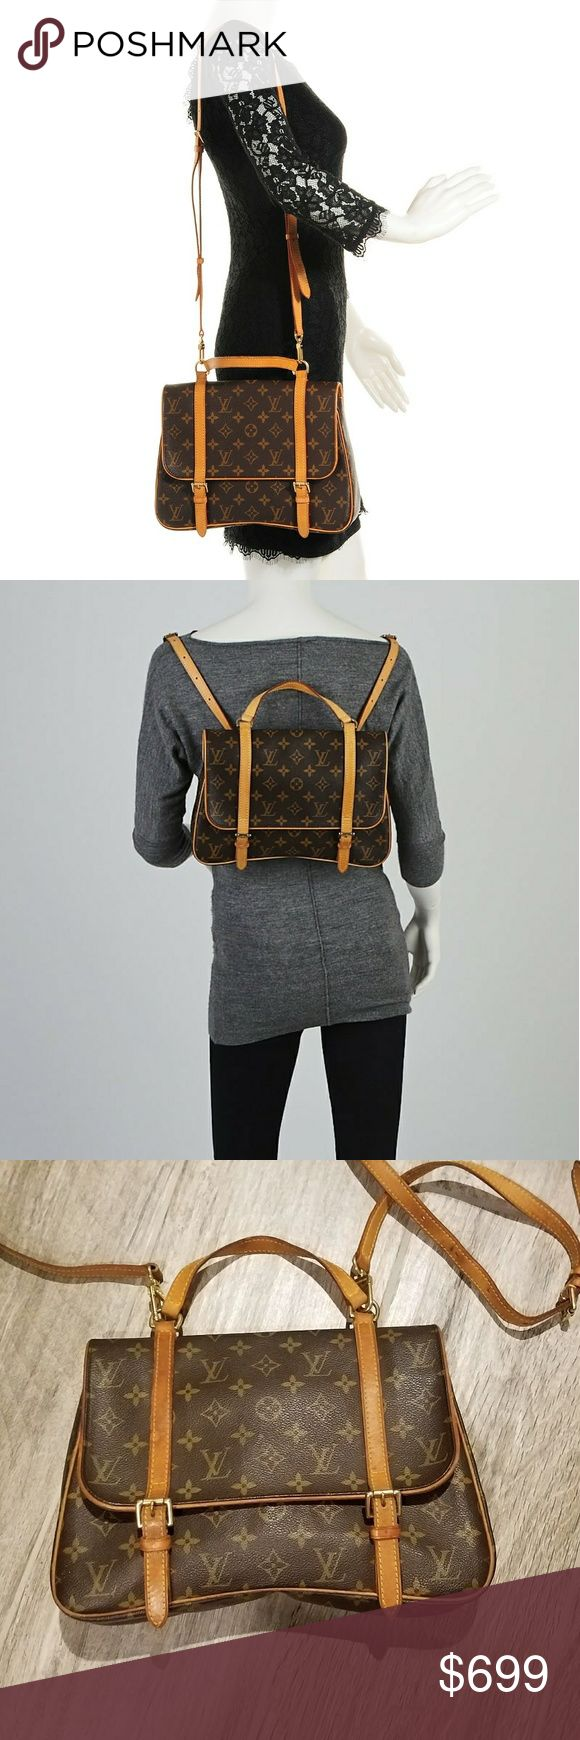 """Authentic Louis Vuitton Marelle Sac a Dos bag Crossbody, handbag, backpack style all in one! Date code SR1024, Made in France. 11 3/4"""" x 7 7/8"""" x 2"""" . Shoulder strap  about 59"""". Pls see all pics for wearm overall great condition,  clean inside, minimal wear on corners. Will sell lower in pypl Louis Vuitton Bags"""